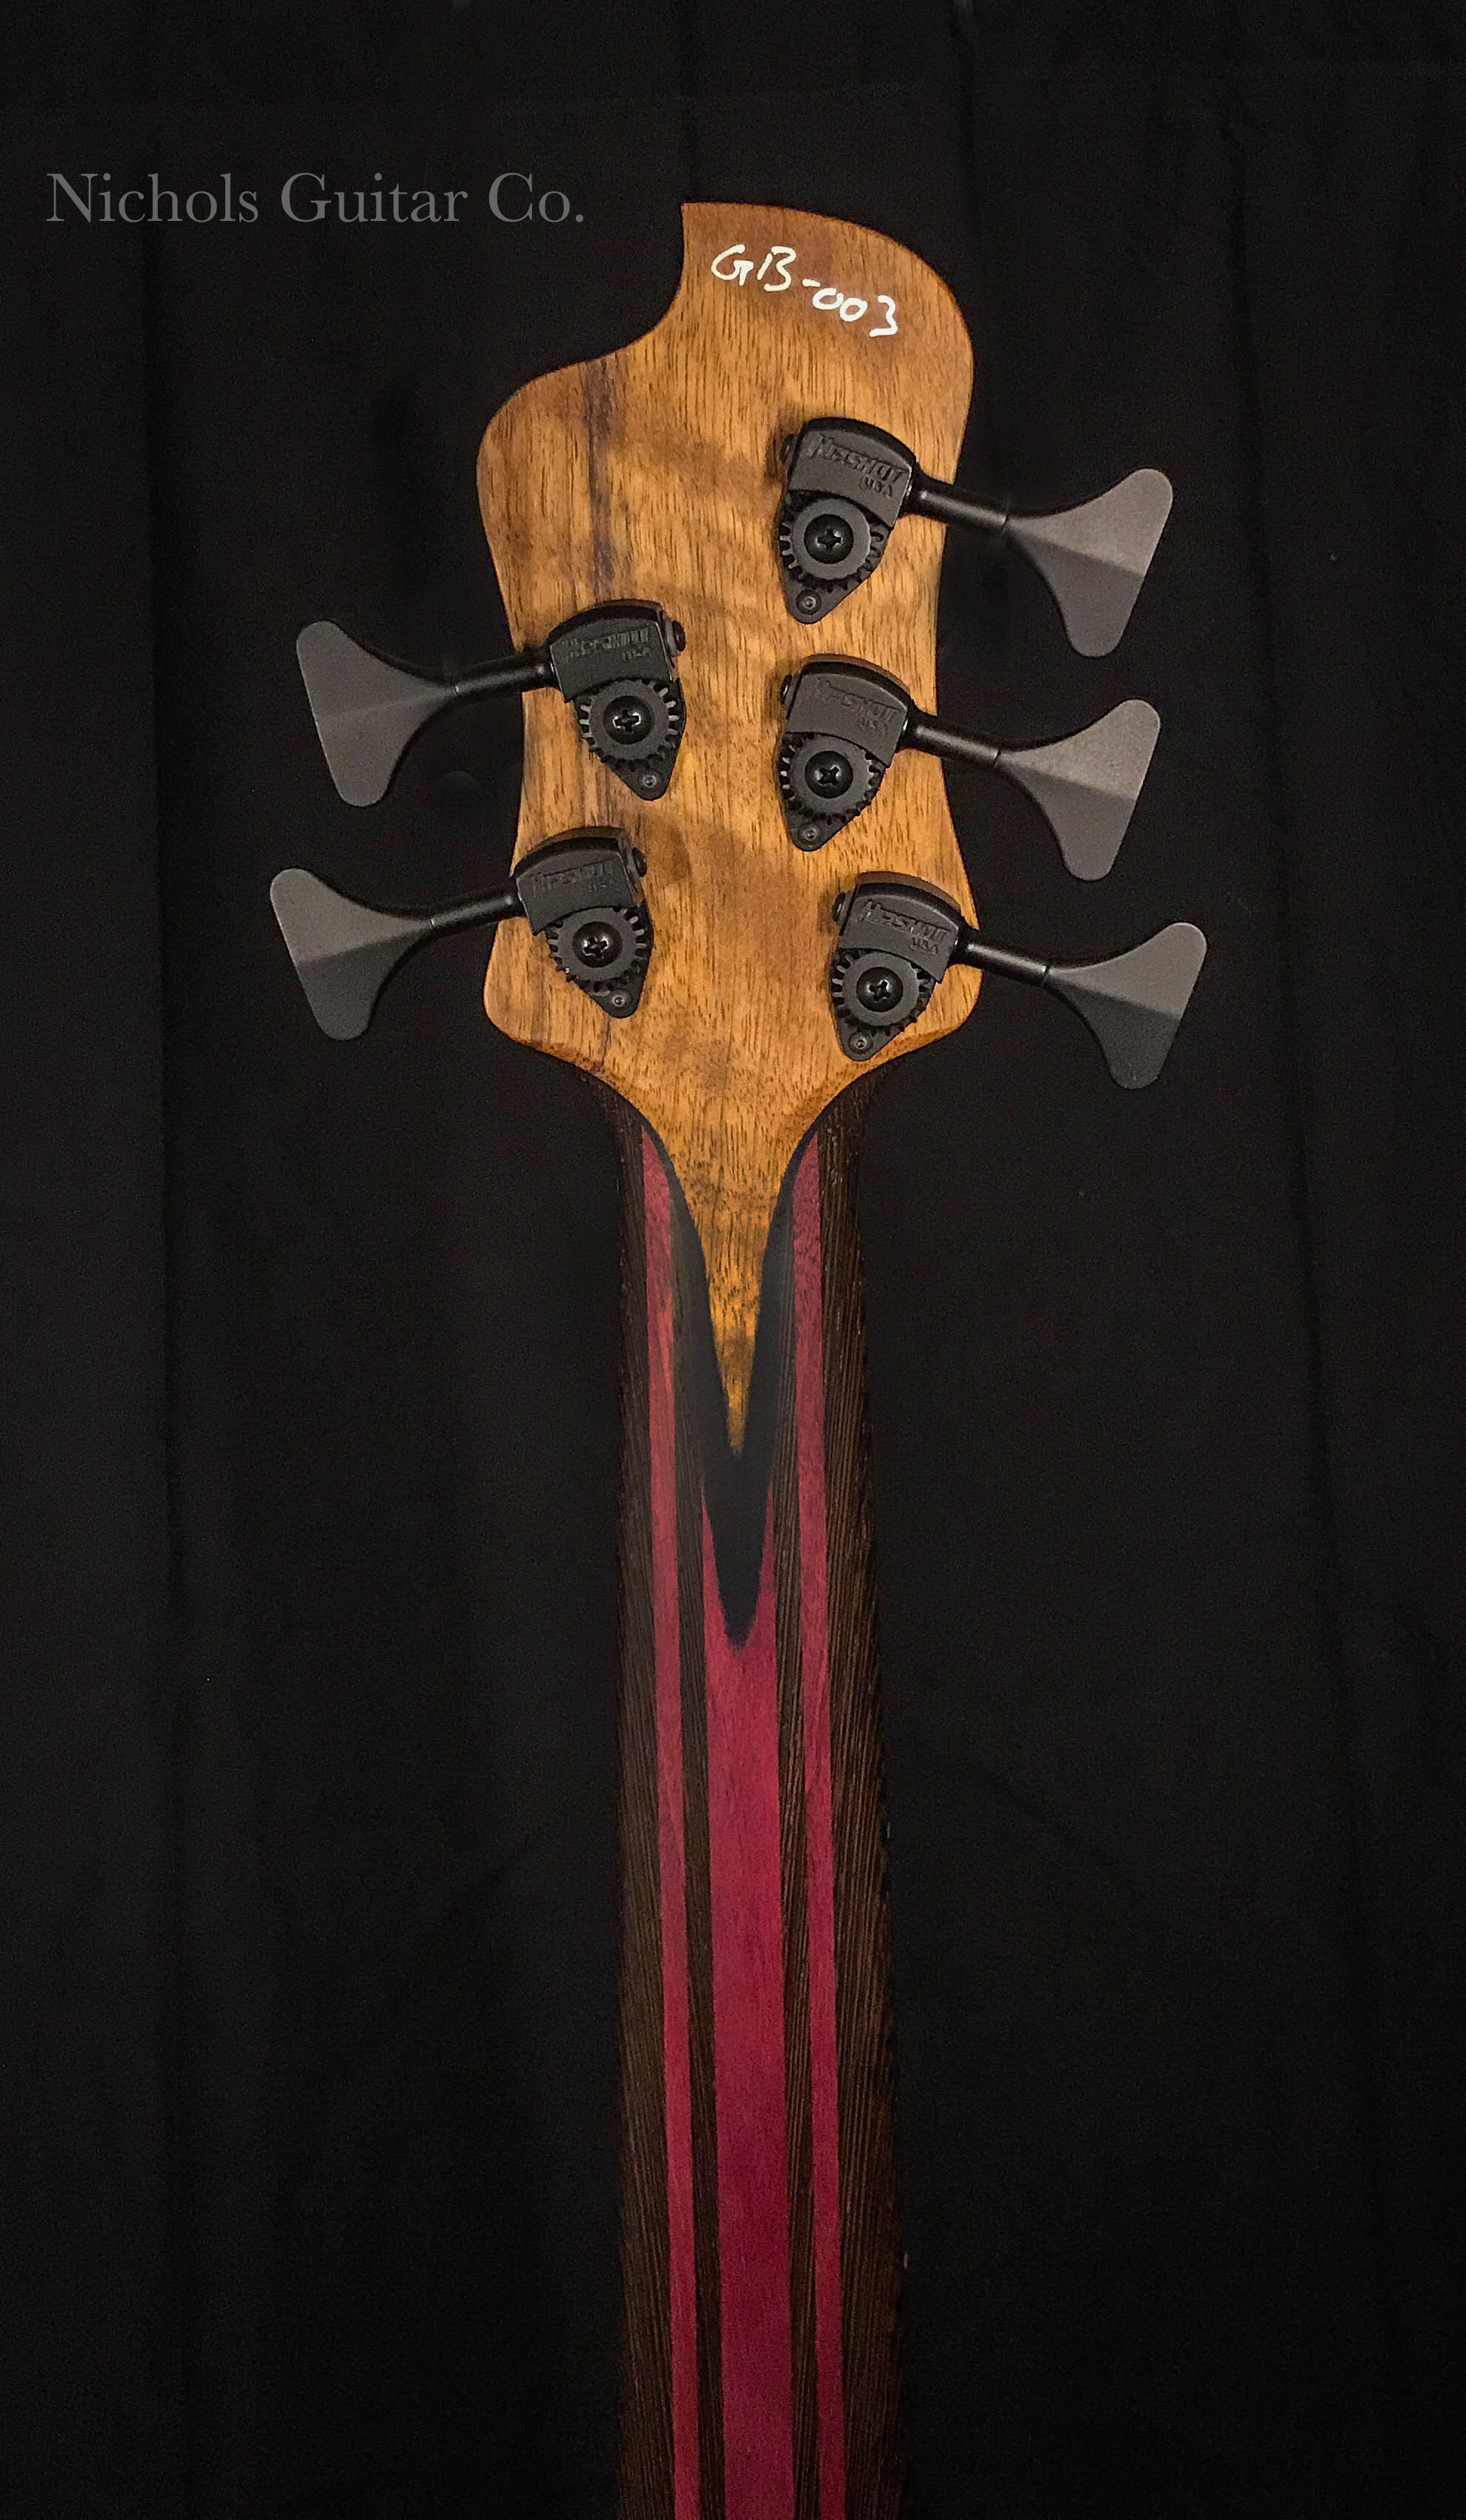 NGCo Gene headstock back